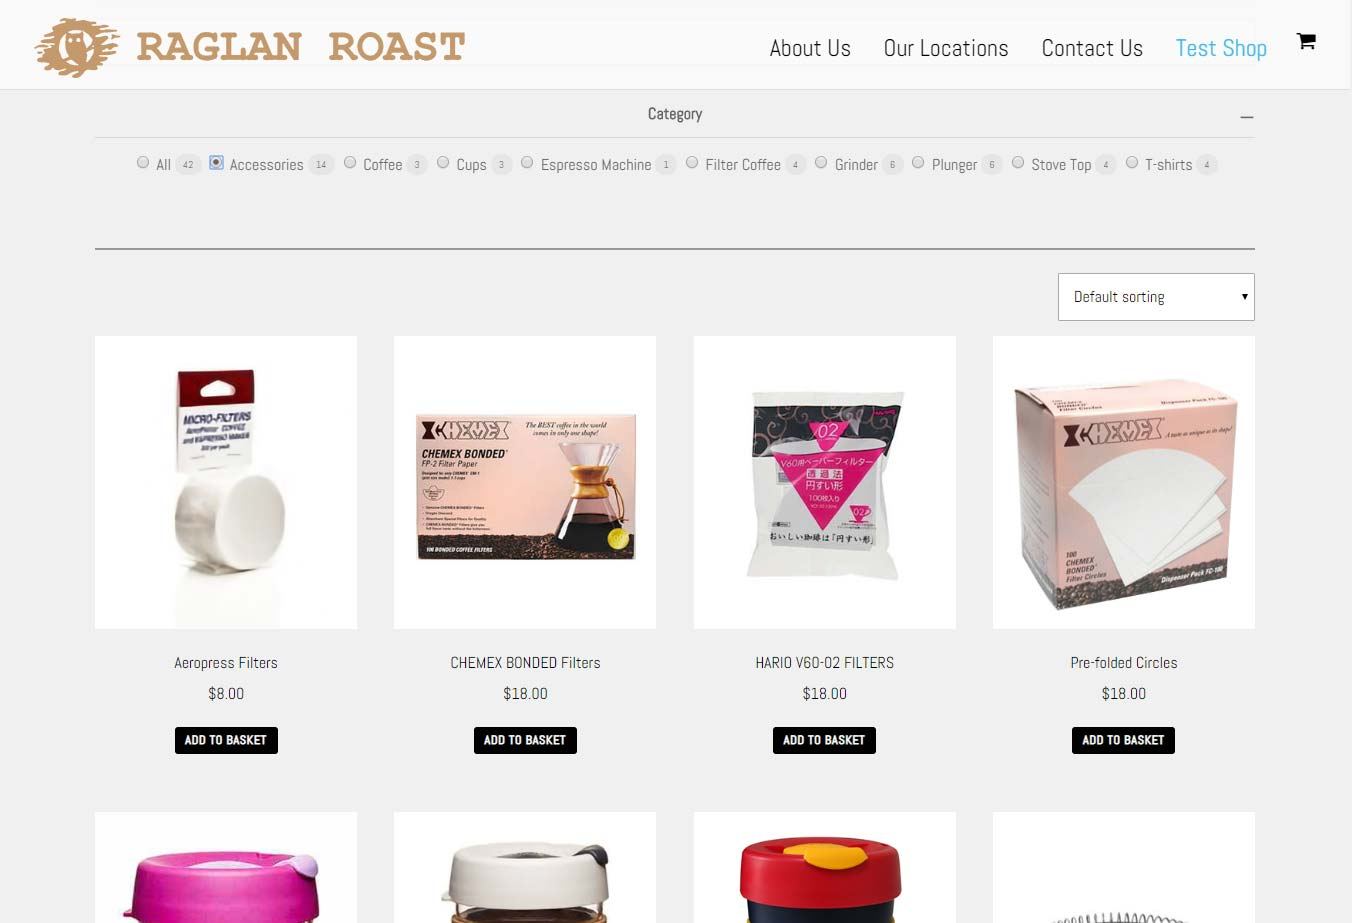 Deploy A Modern Mobile Friendly Ecommerce Storefront By Allanwerner